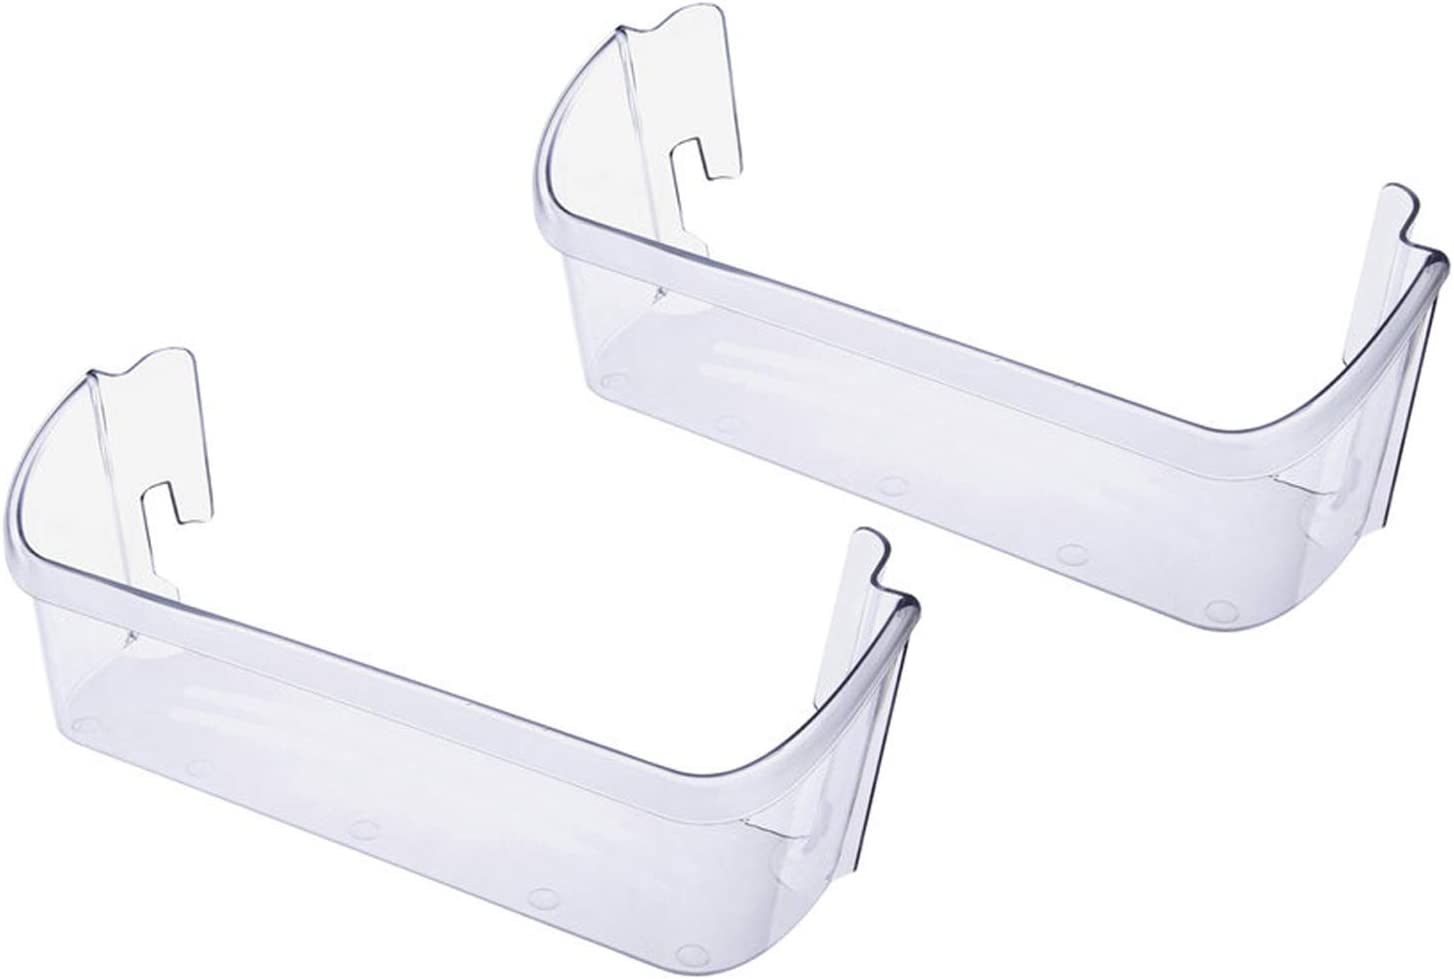 Siwdoy (Pack of 2) 240323002 Refrigerator Door Bin Compatible with Frigidaire Electrolux Replaces PS429725 AP2115742, Clear